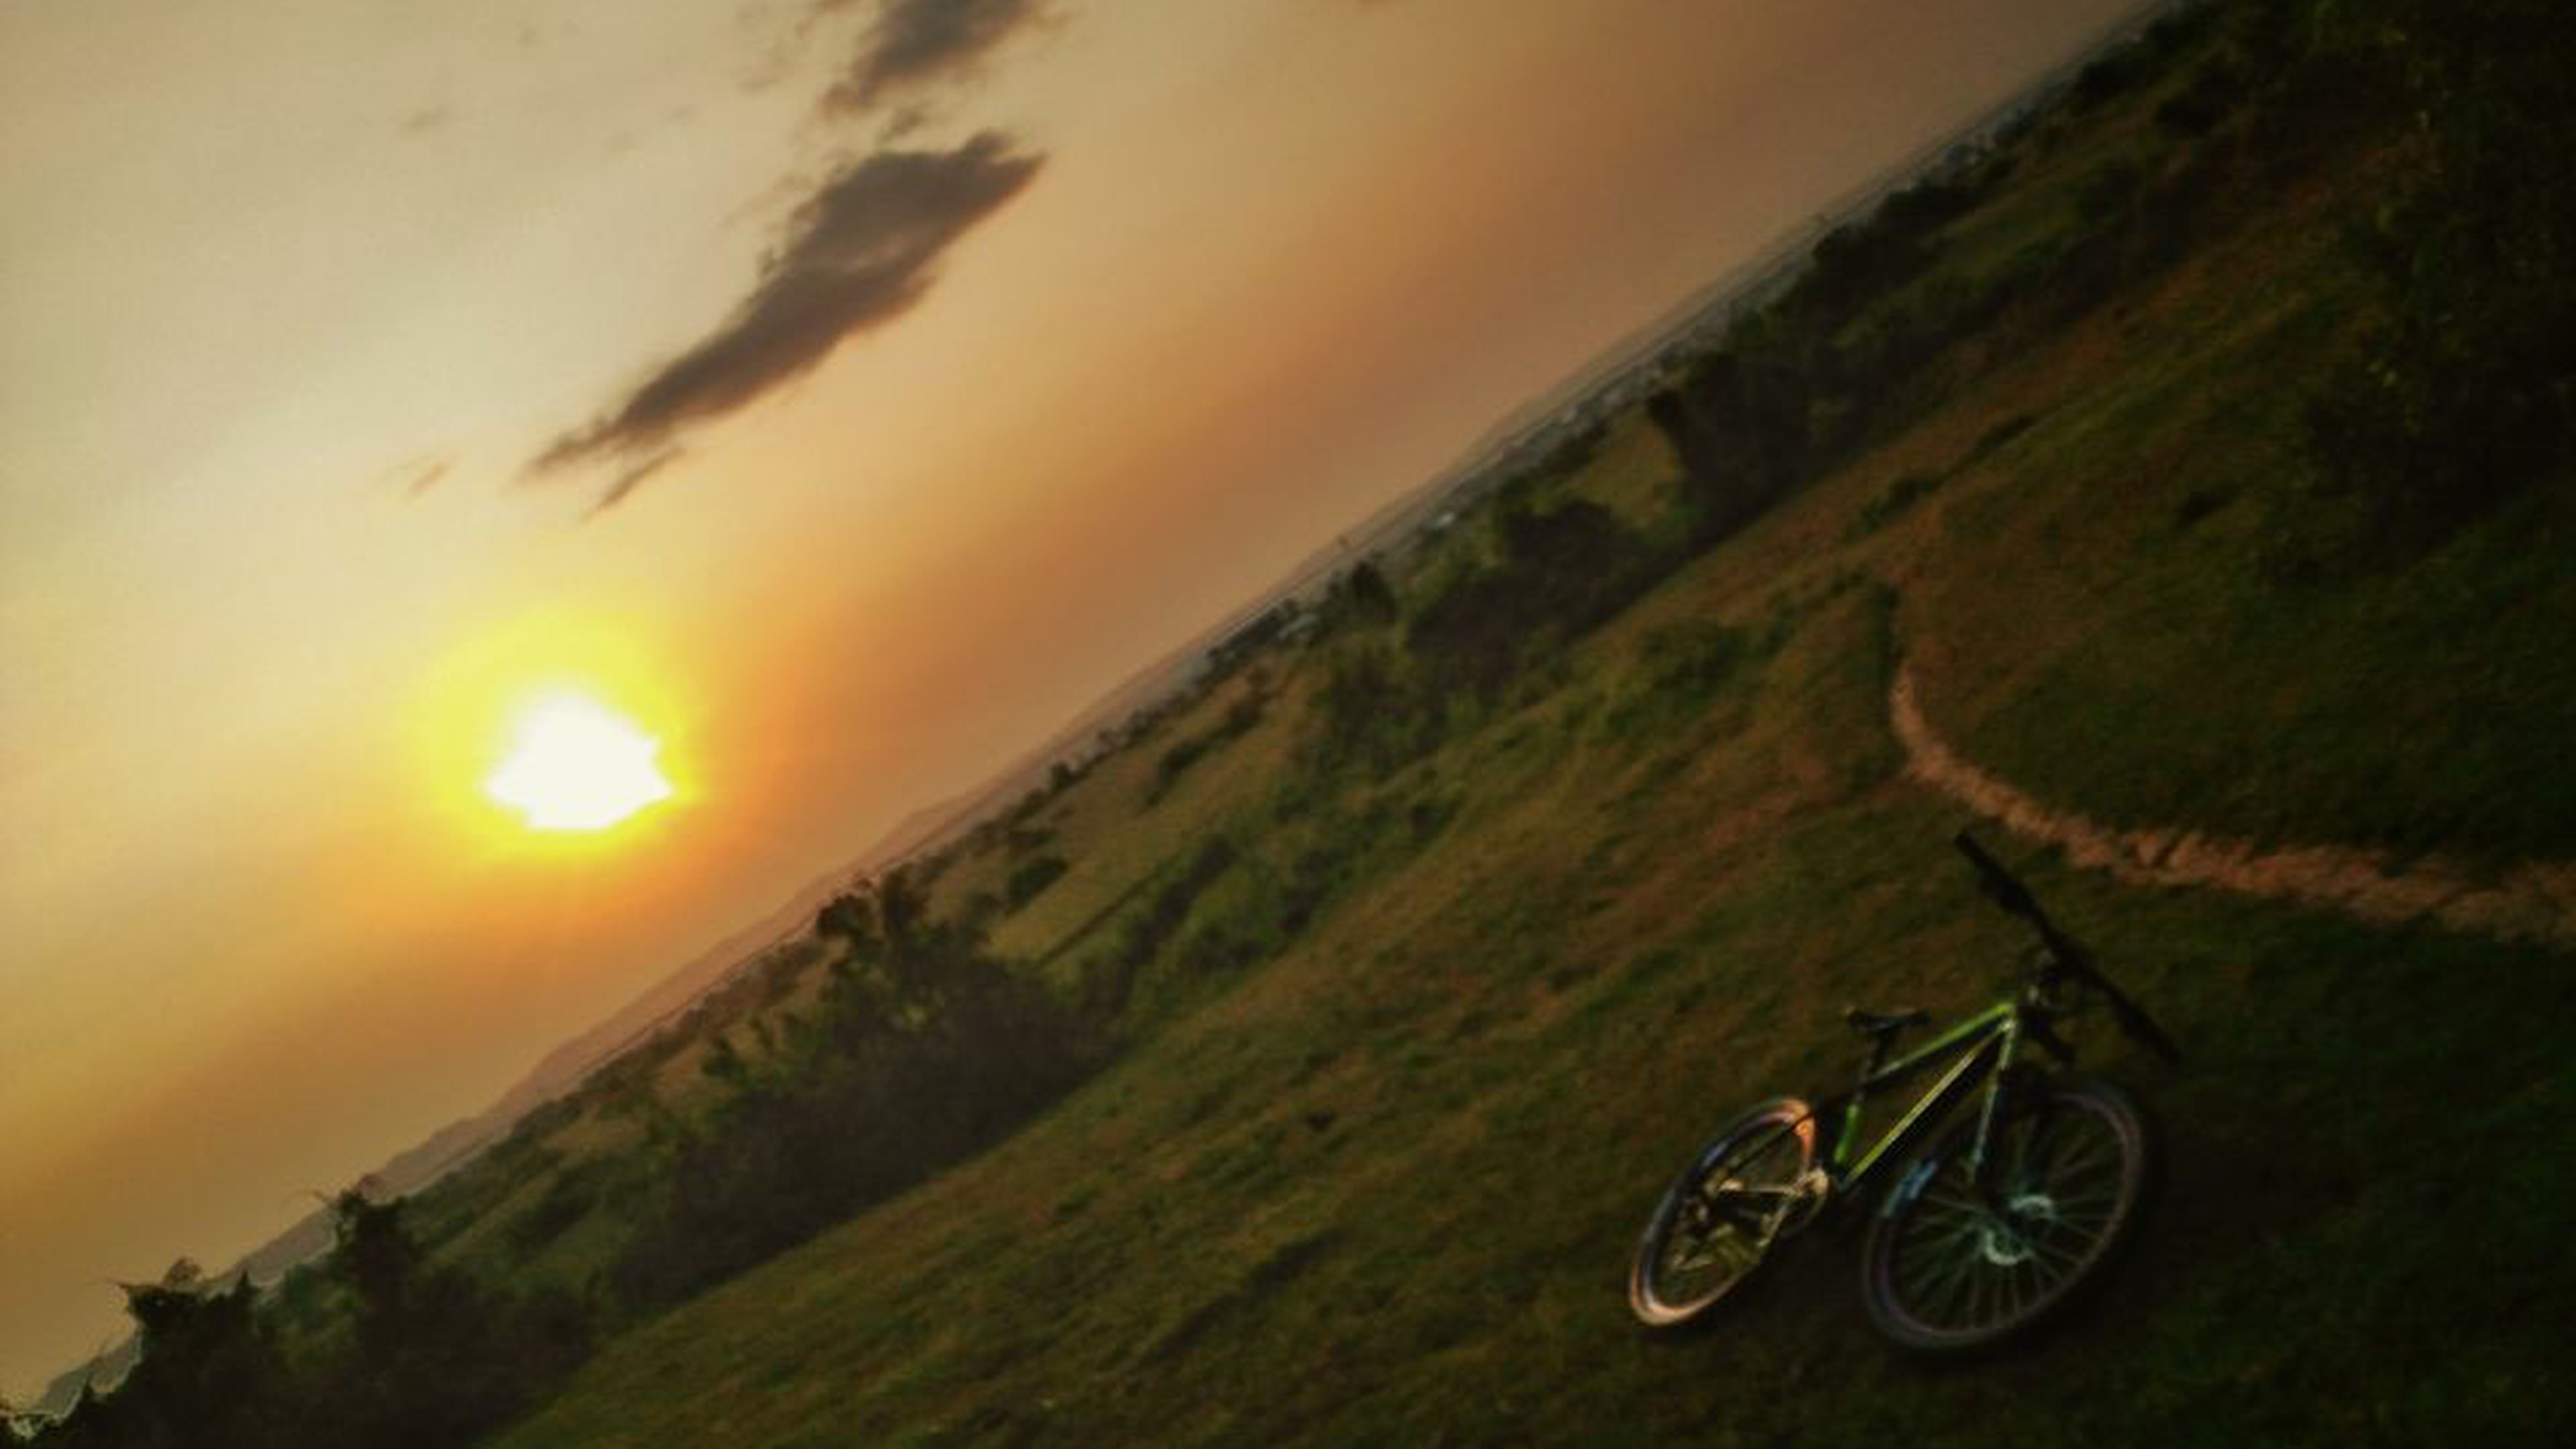 bicycle, cycling, sunset, scenics, transportation, tranquil scene, landscape, nature, no people, outdoors, pedal, mountain, wheel, grass, mountain bike, sky, day, beauty in nature